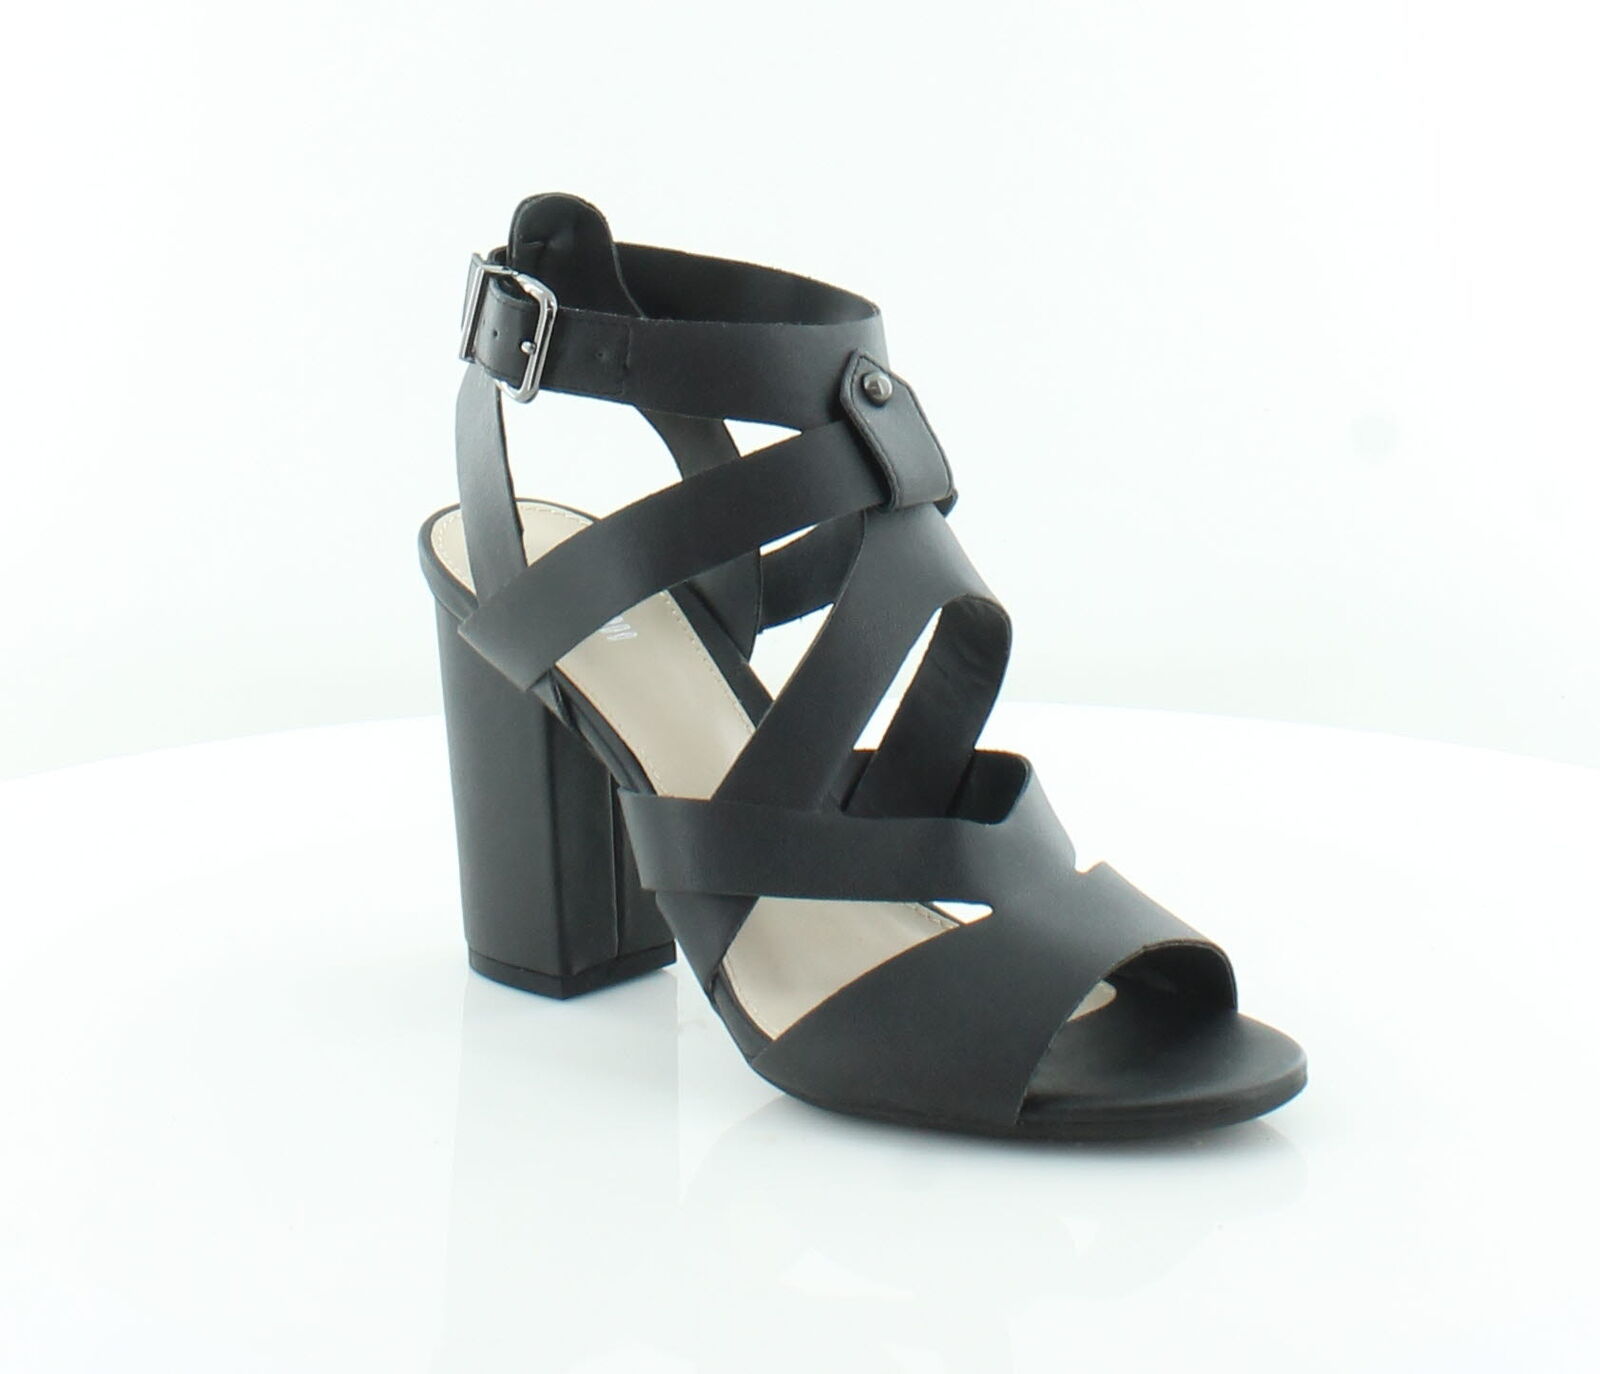 Bar III New Mae Black Womens shoes Size 8.5 M Sandals MSRP  89.99